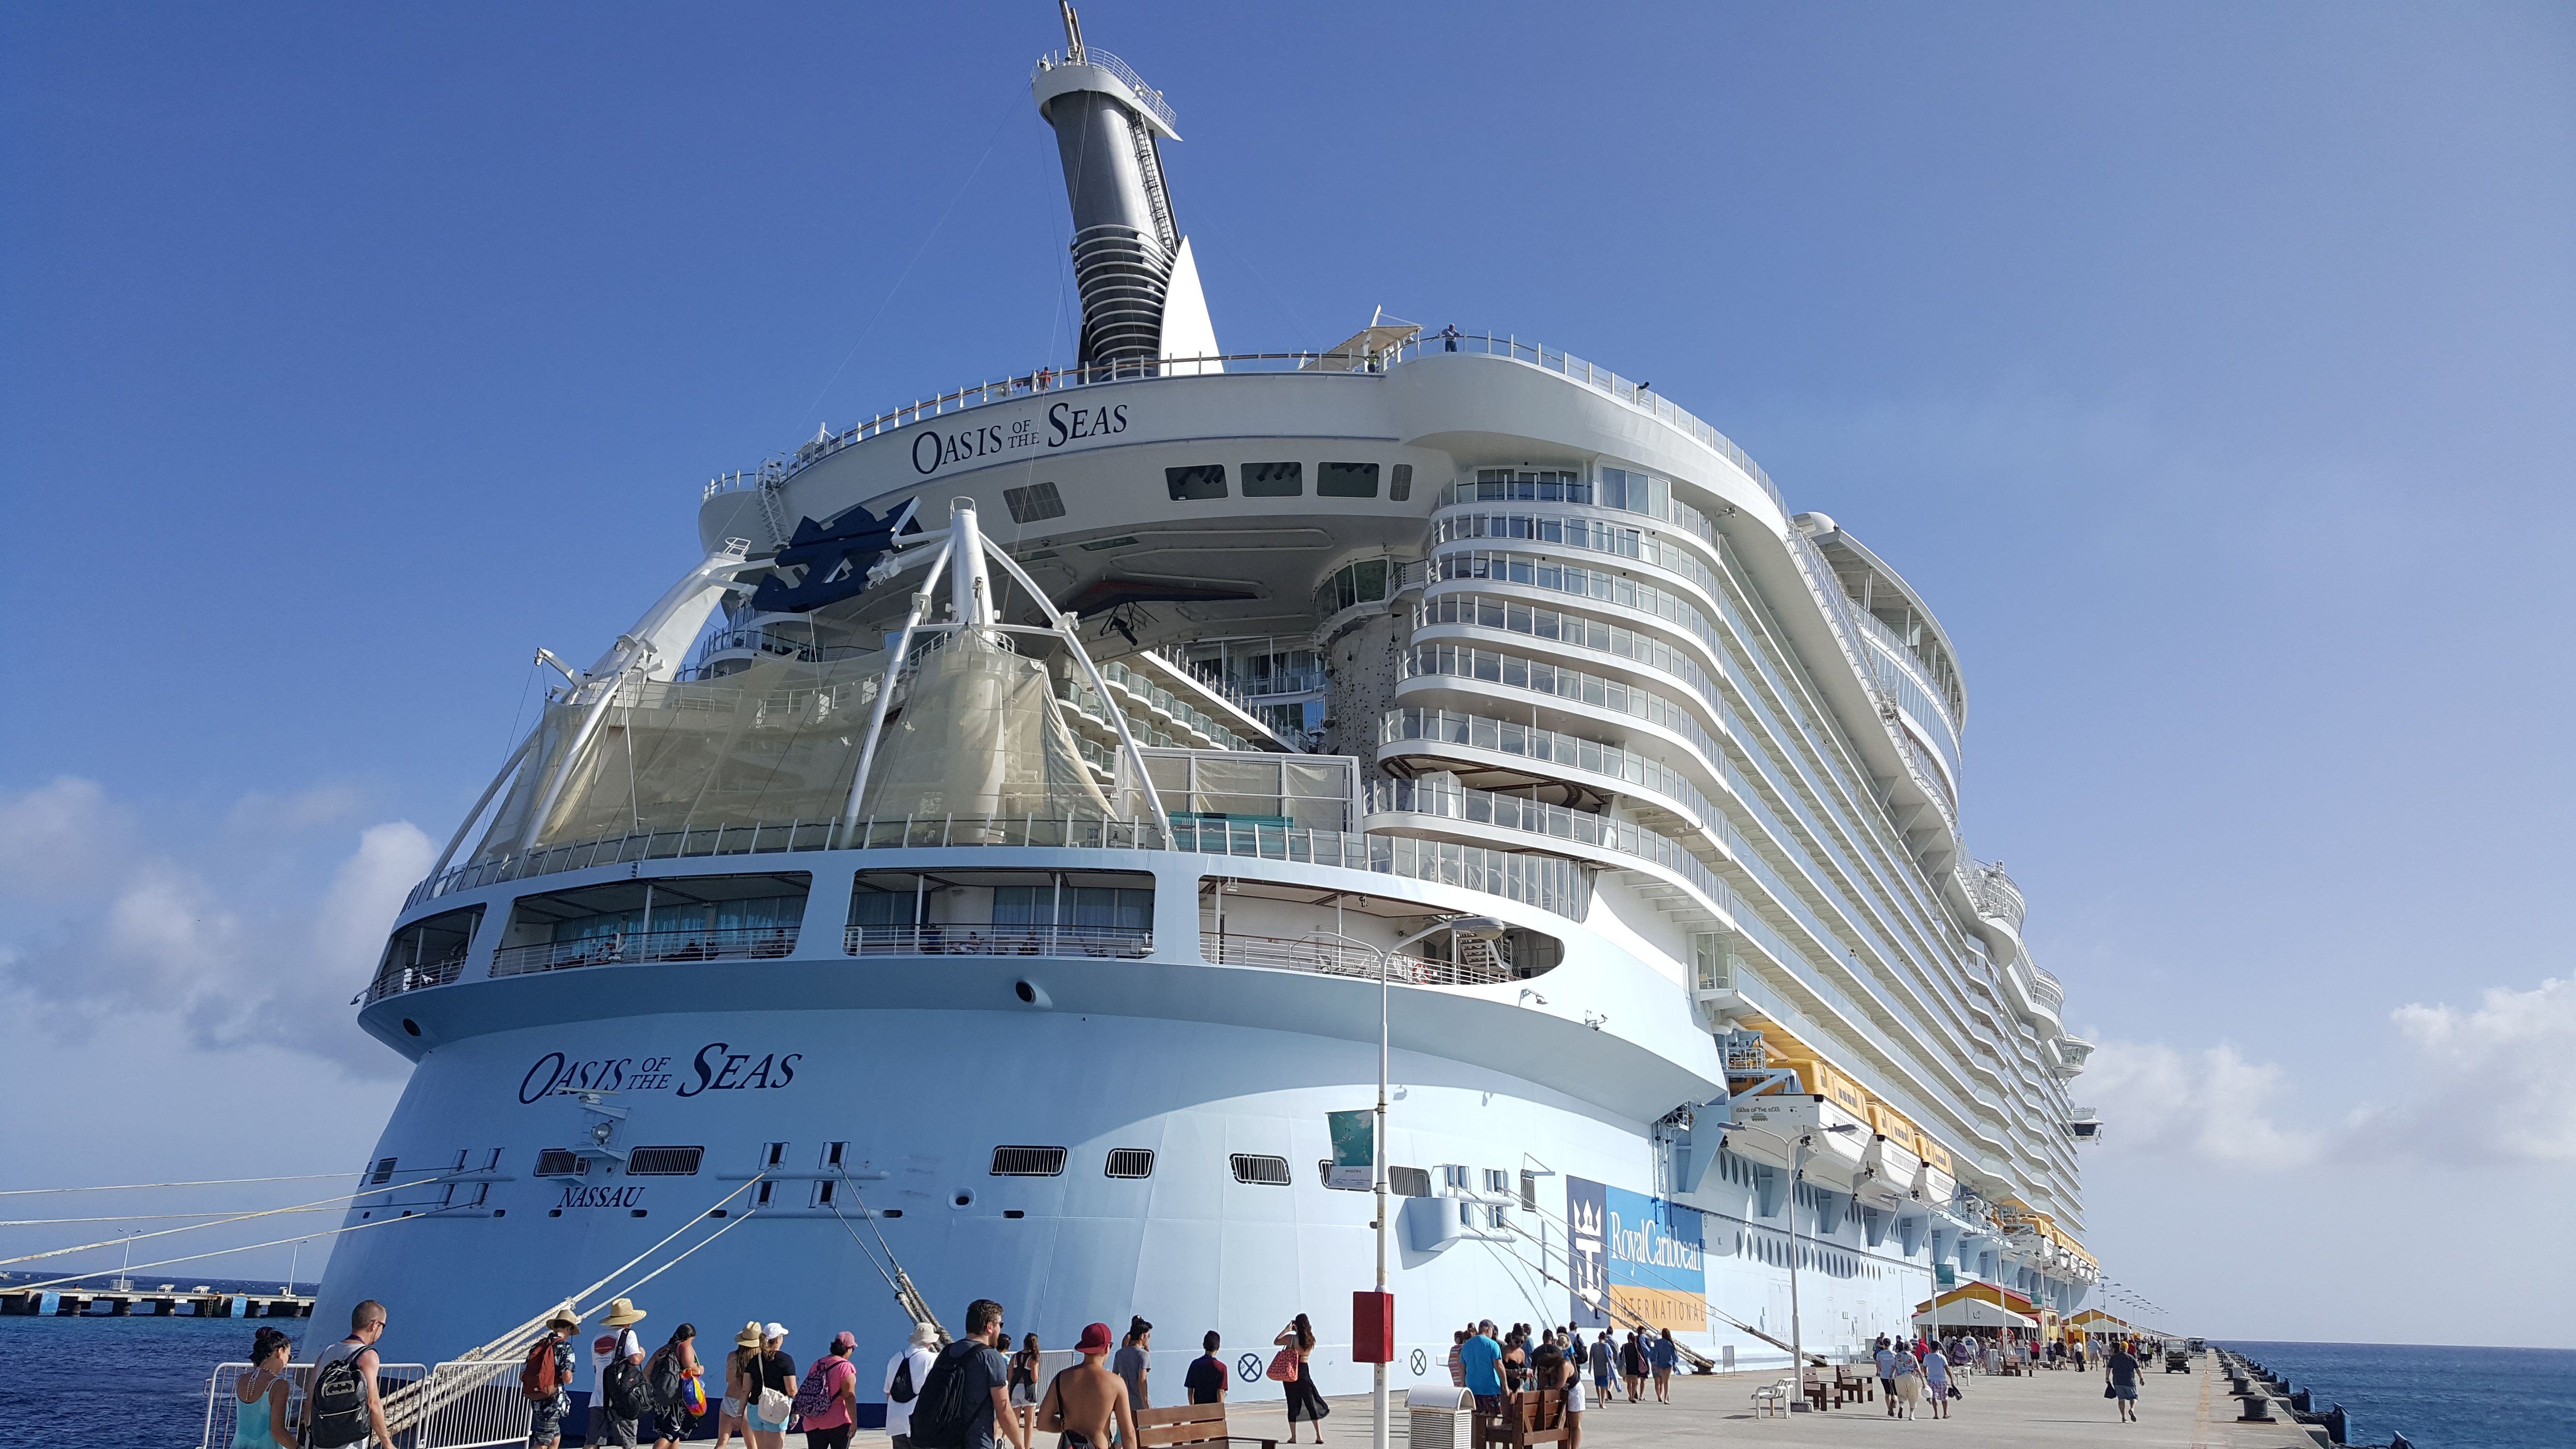 The Royal Caribbeans Oasis Of The Seas The Largest Cruise Ship - Cruise ships out of charleston south carolina